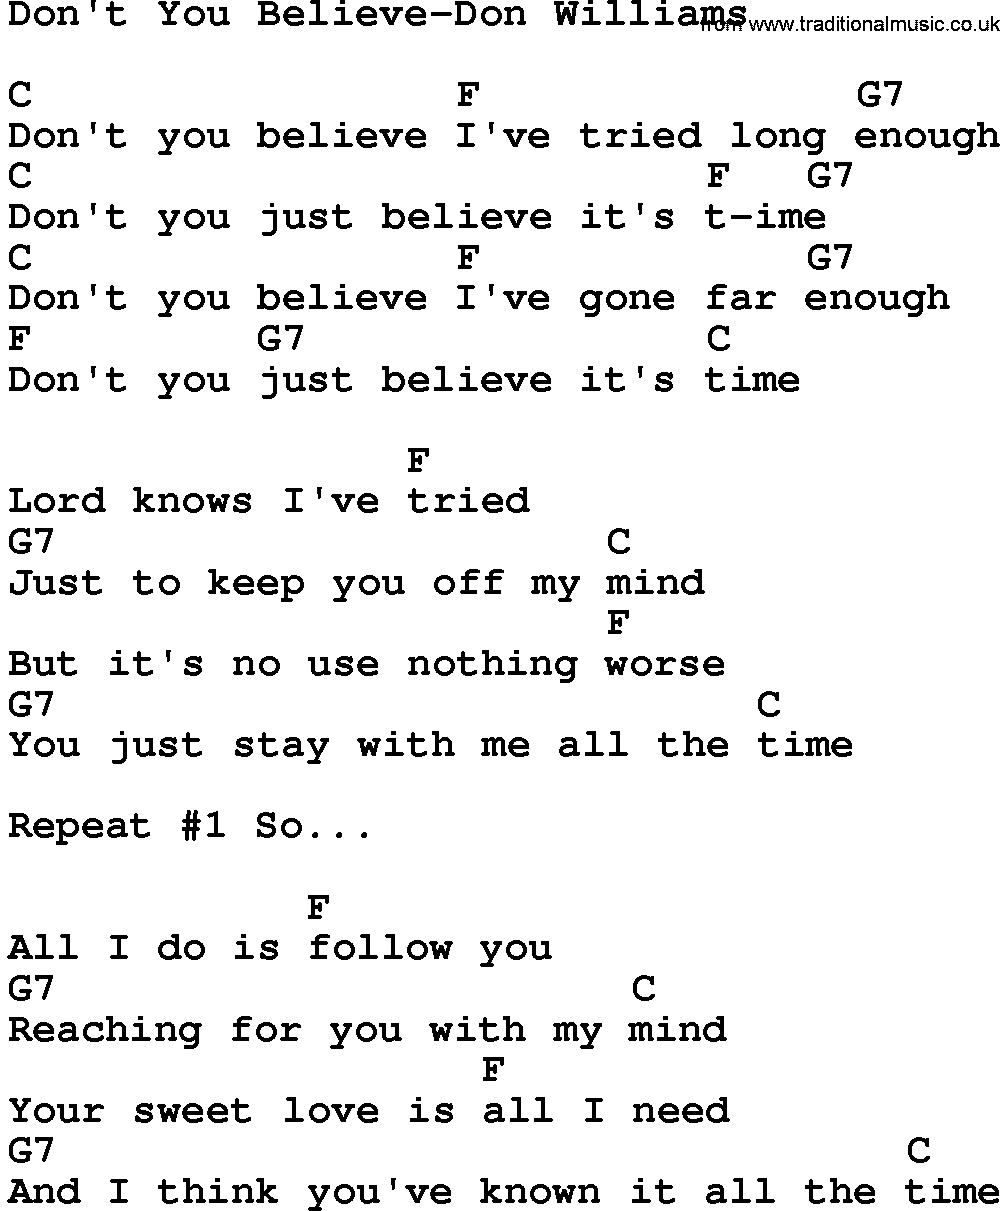 Songtext von P!nk - I Don't Believe You Lyrics